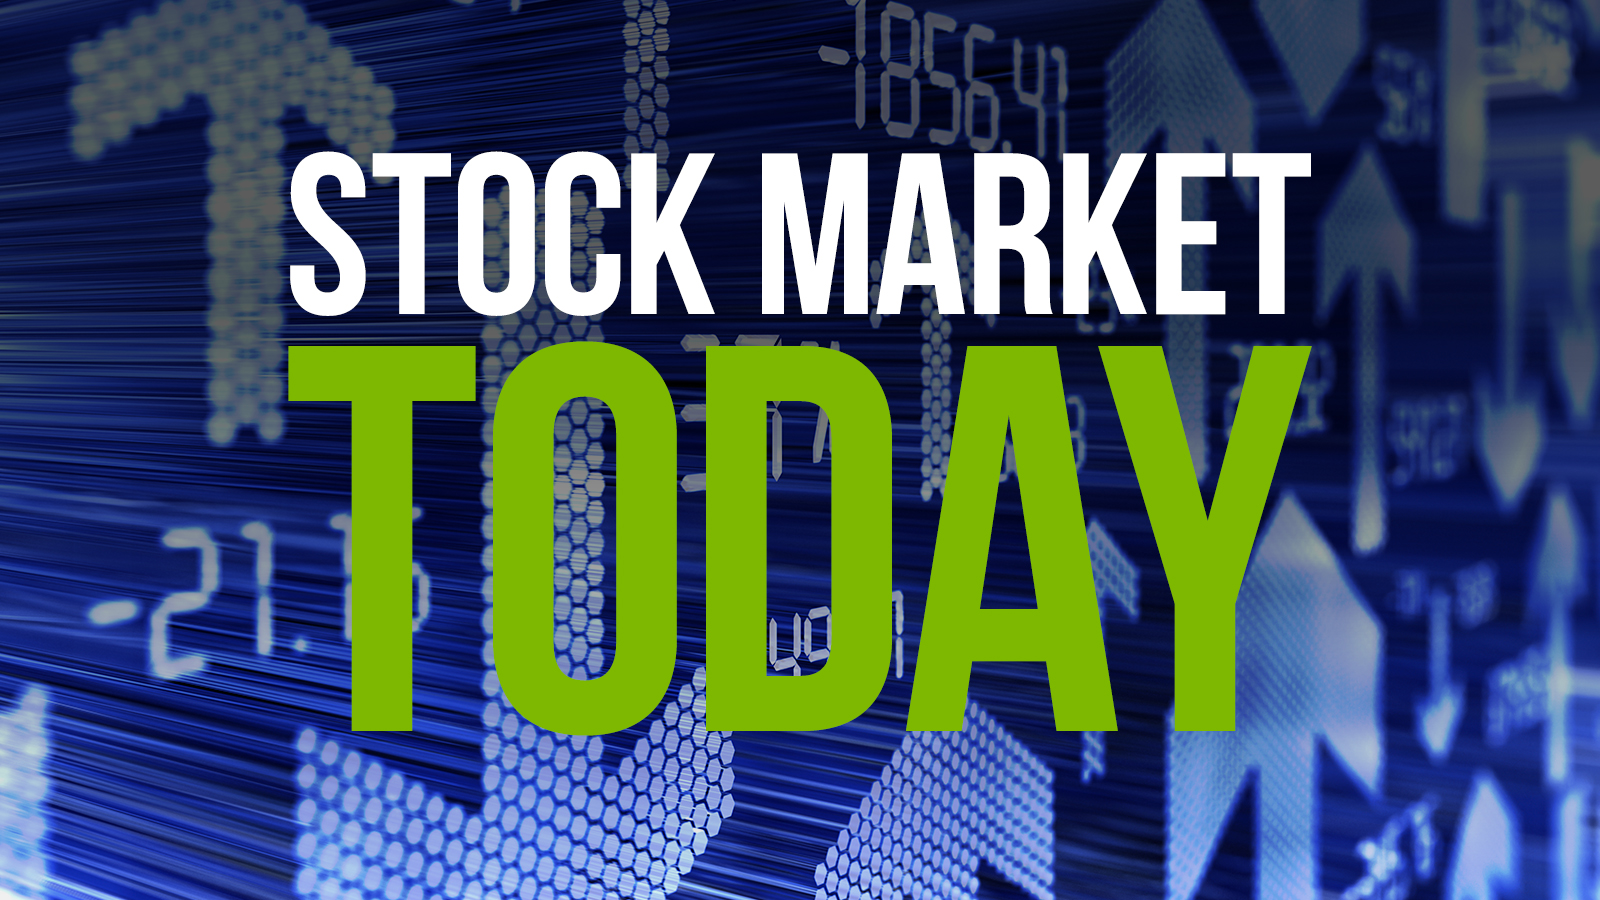 Stock Market Today: High-Growth Stocks Get Hammered | InvestorPlace